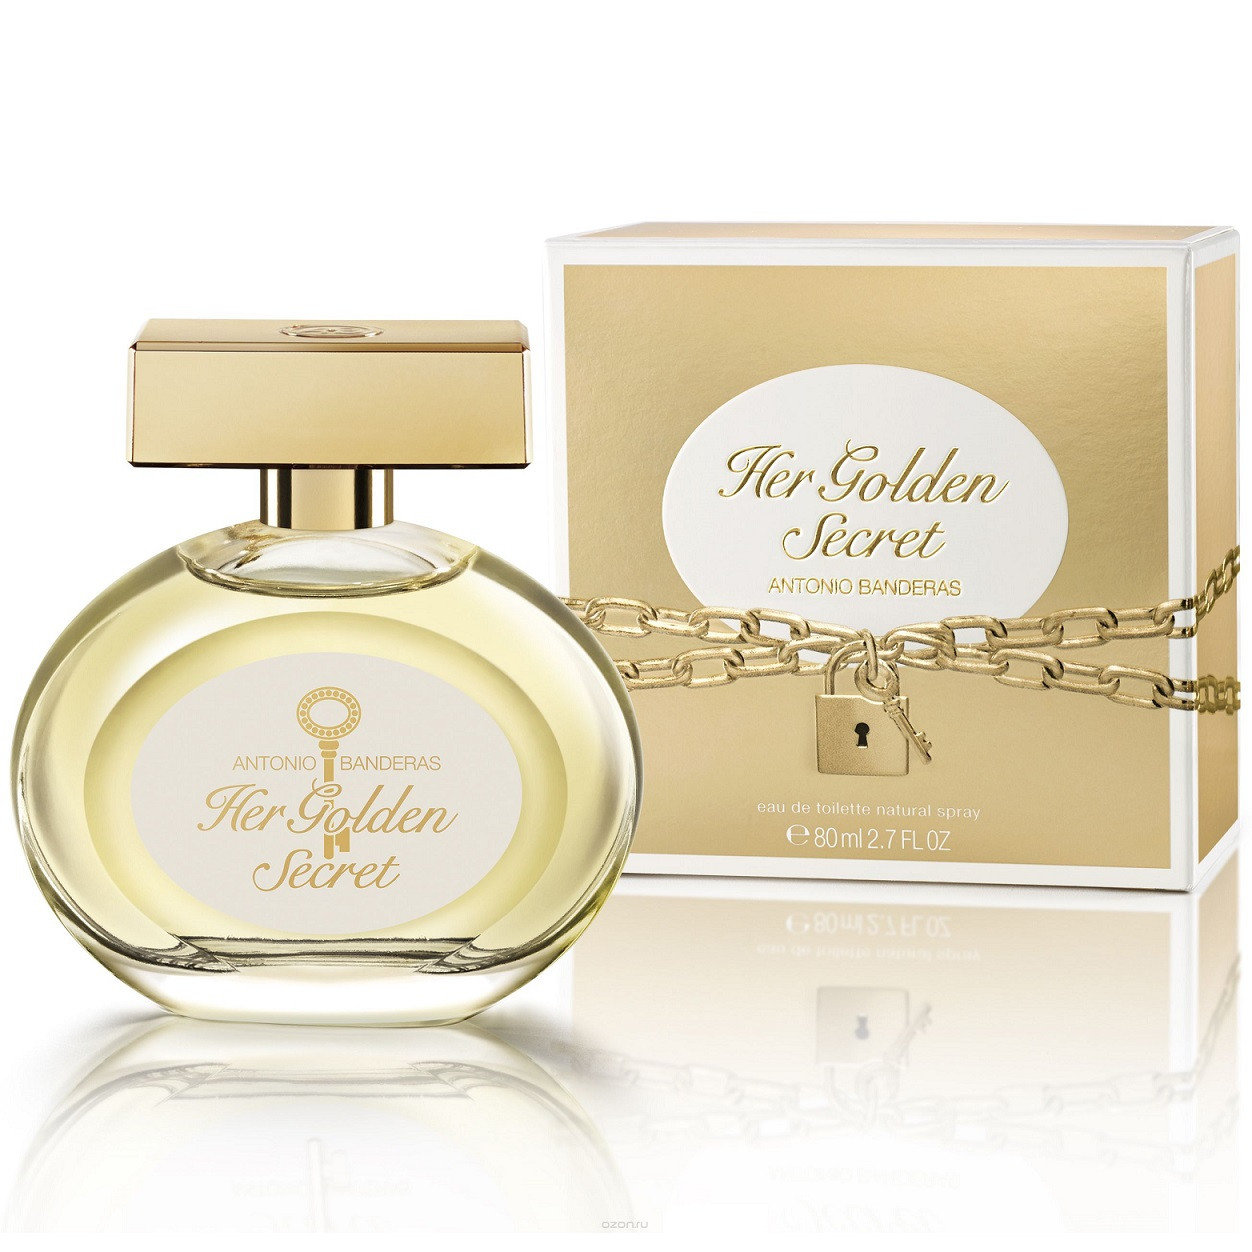 Туалетная вода Her Golden Secret от Antonio Banderas